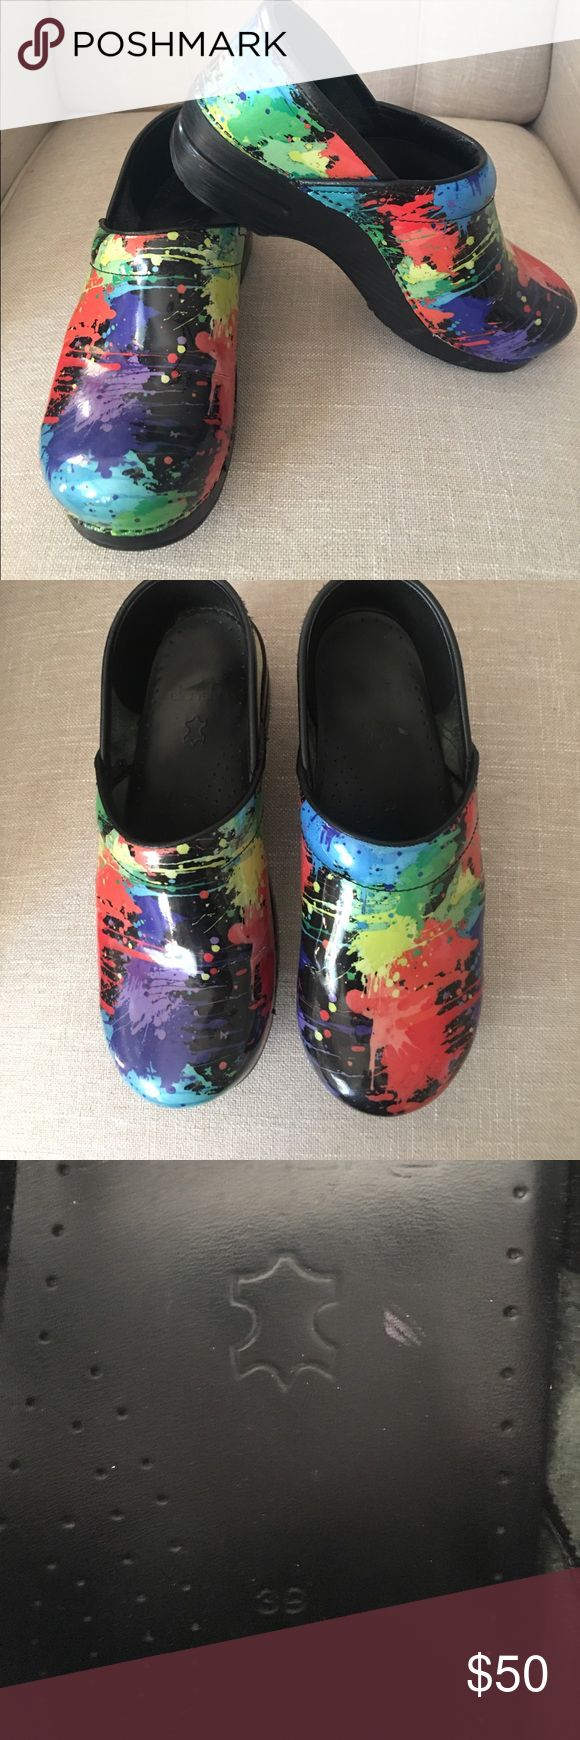 Multicolor paint splatter Danskos. Size 39 (8.5-9) Great (nearly new) condition. Perfect for nurses or anyone on their feet all day. Size 39 (8.5-9) Dansko Shoes Mules & Clogs